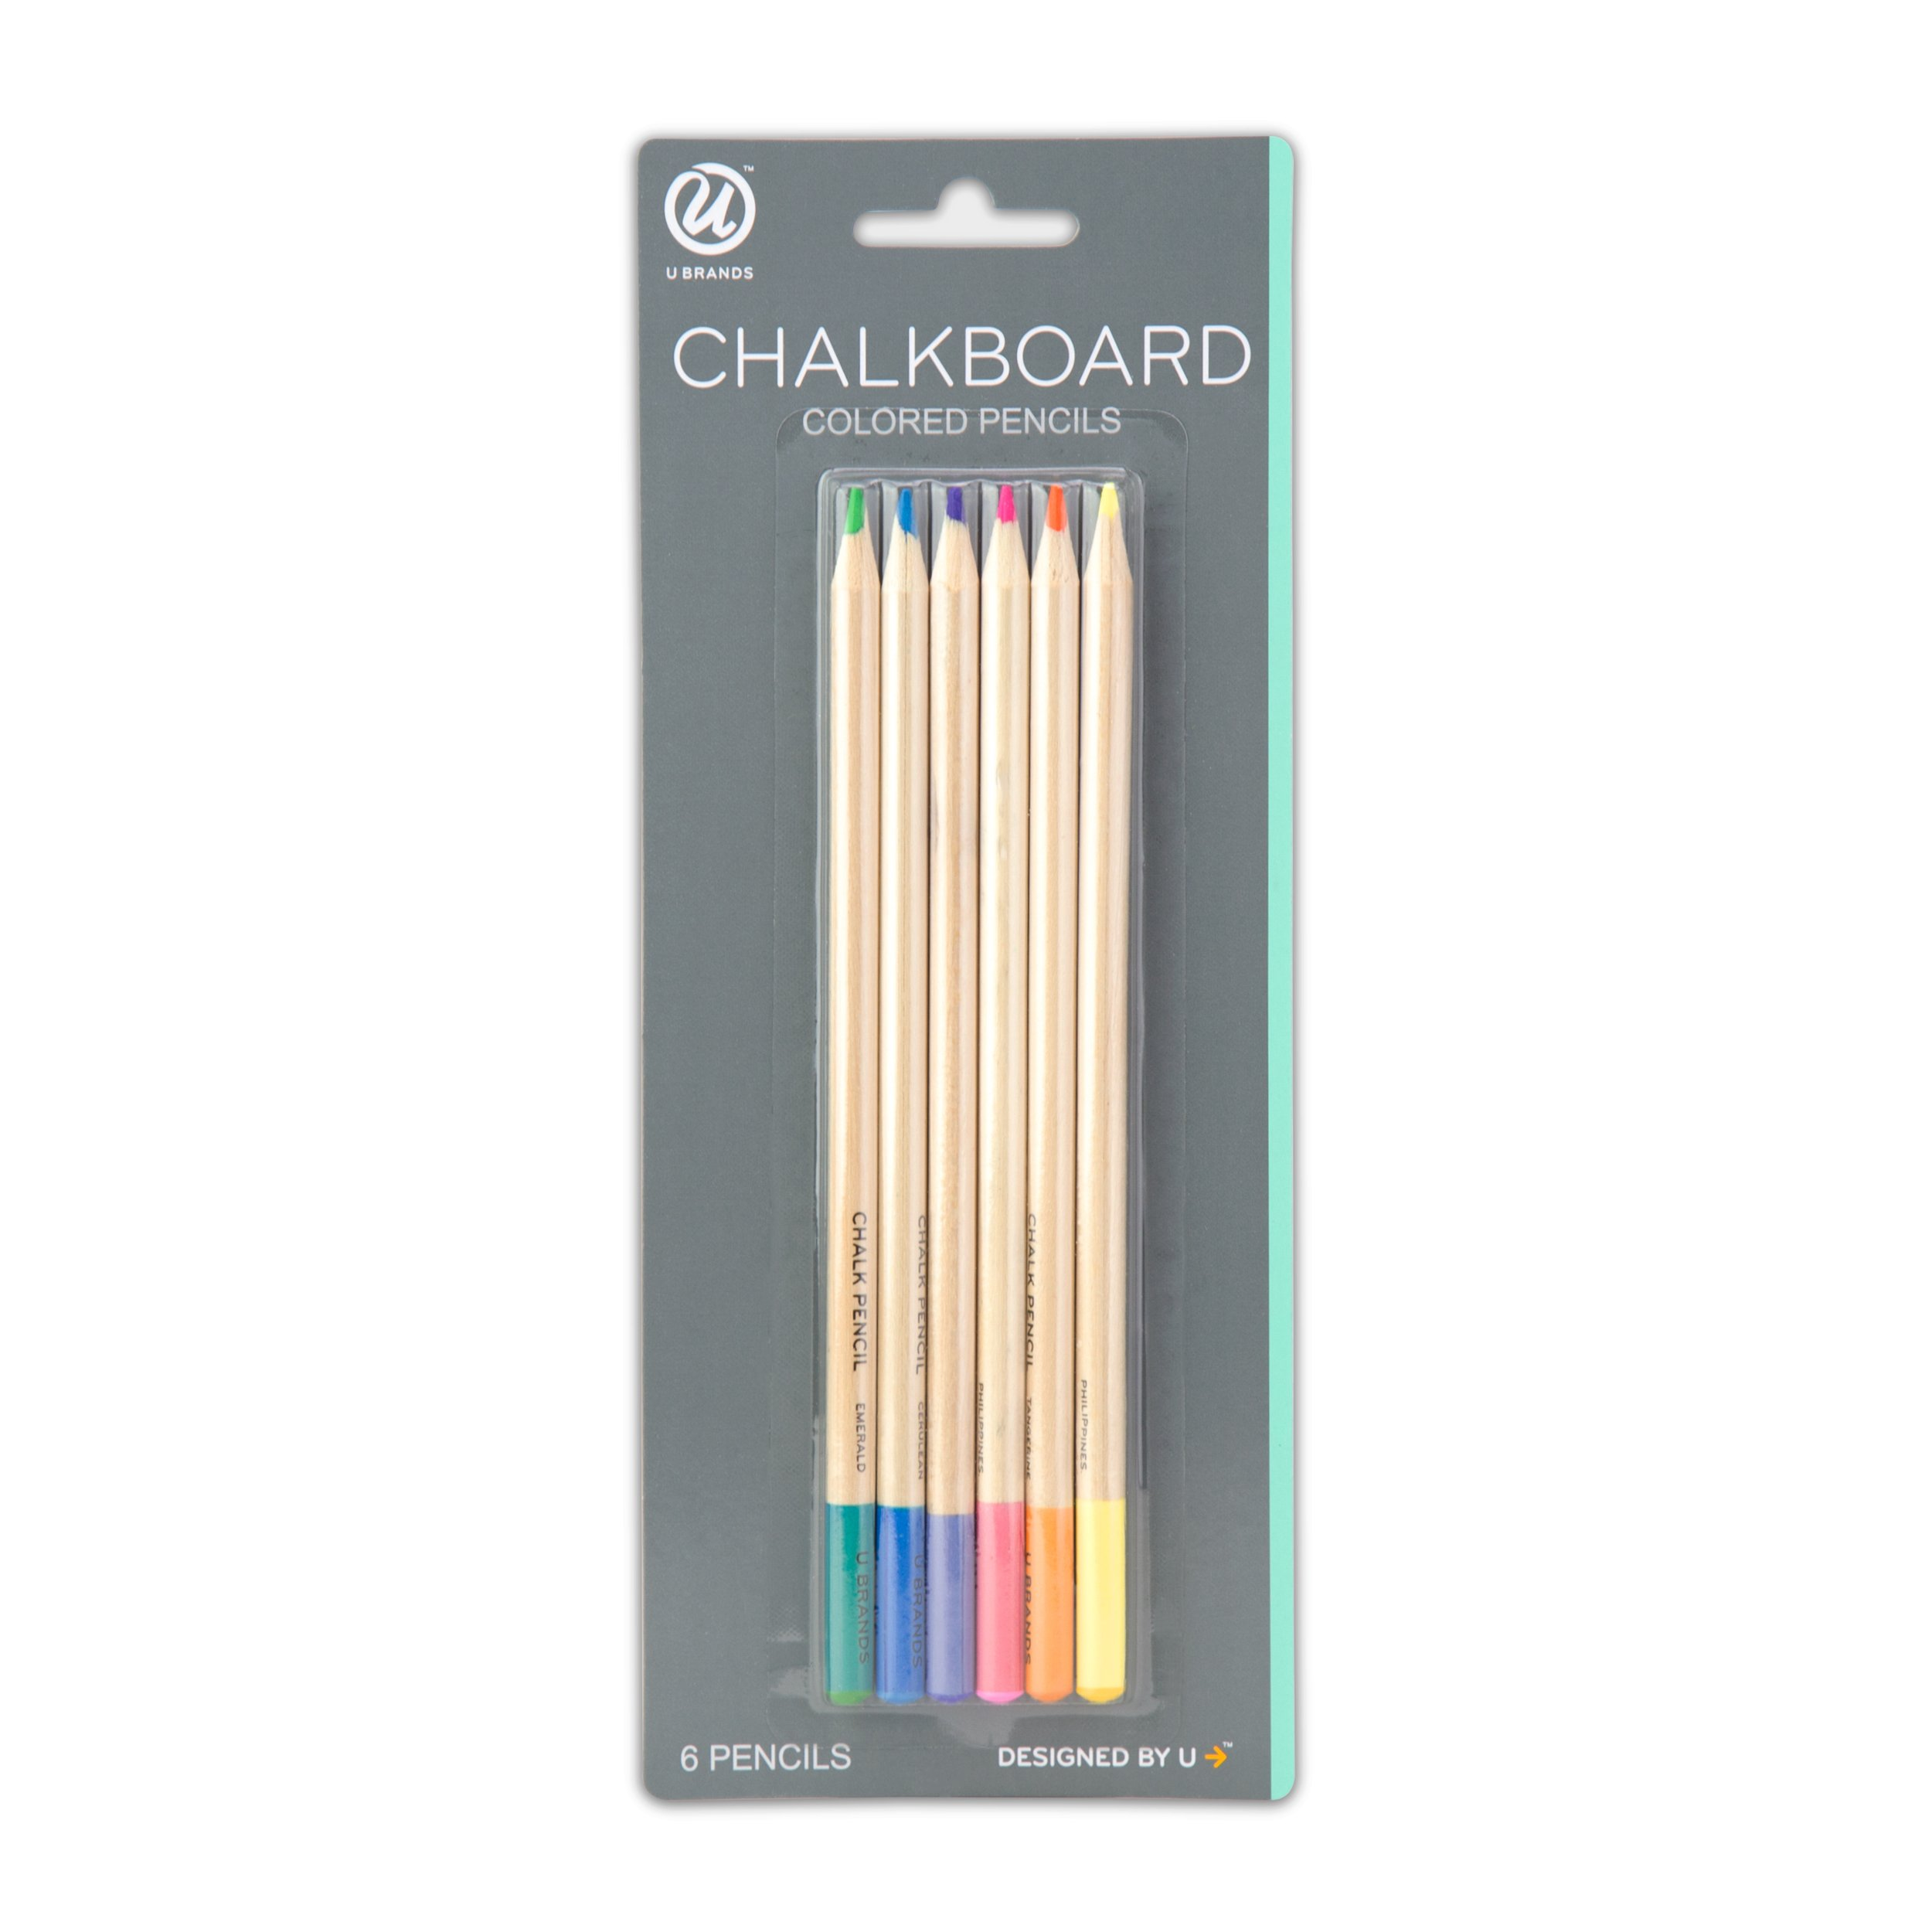 U Brands Chalkboard Colored Pencils, Assorted Colors, 6-Count by U Brands (Image #1)